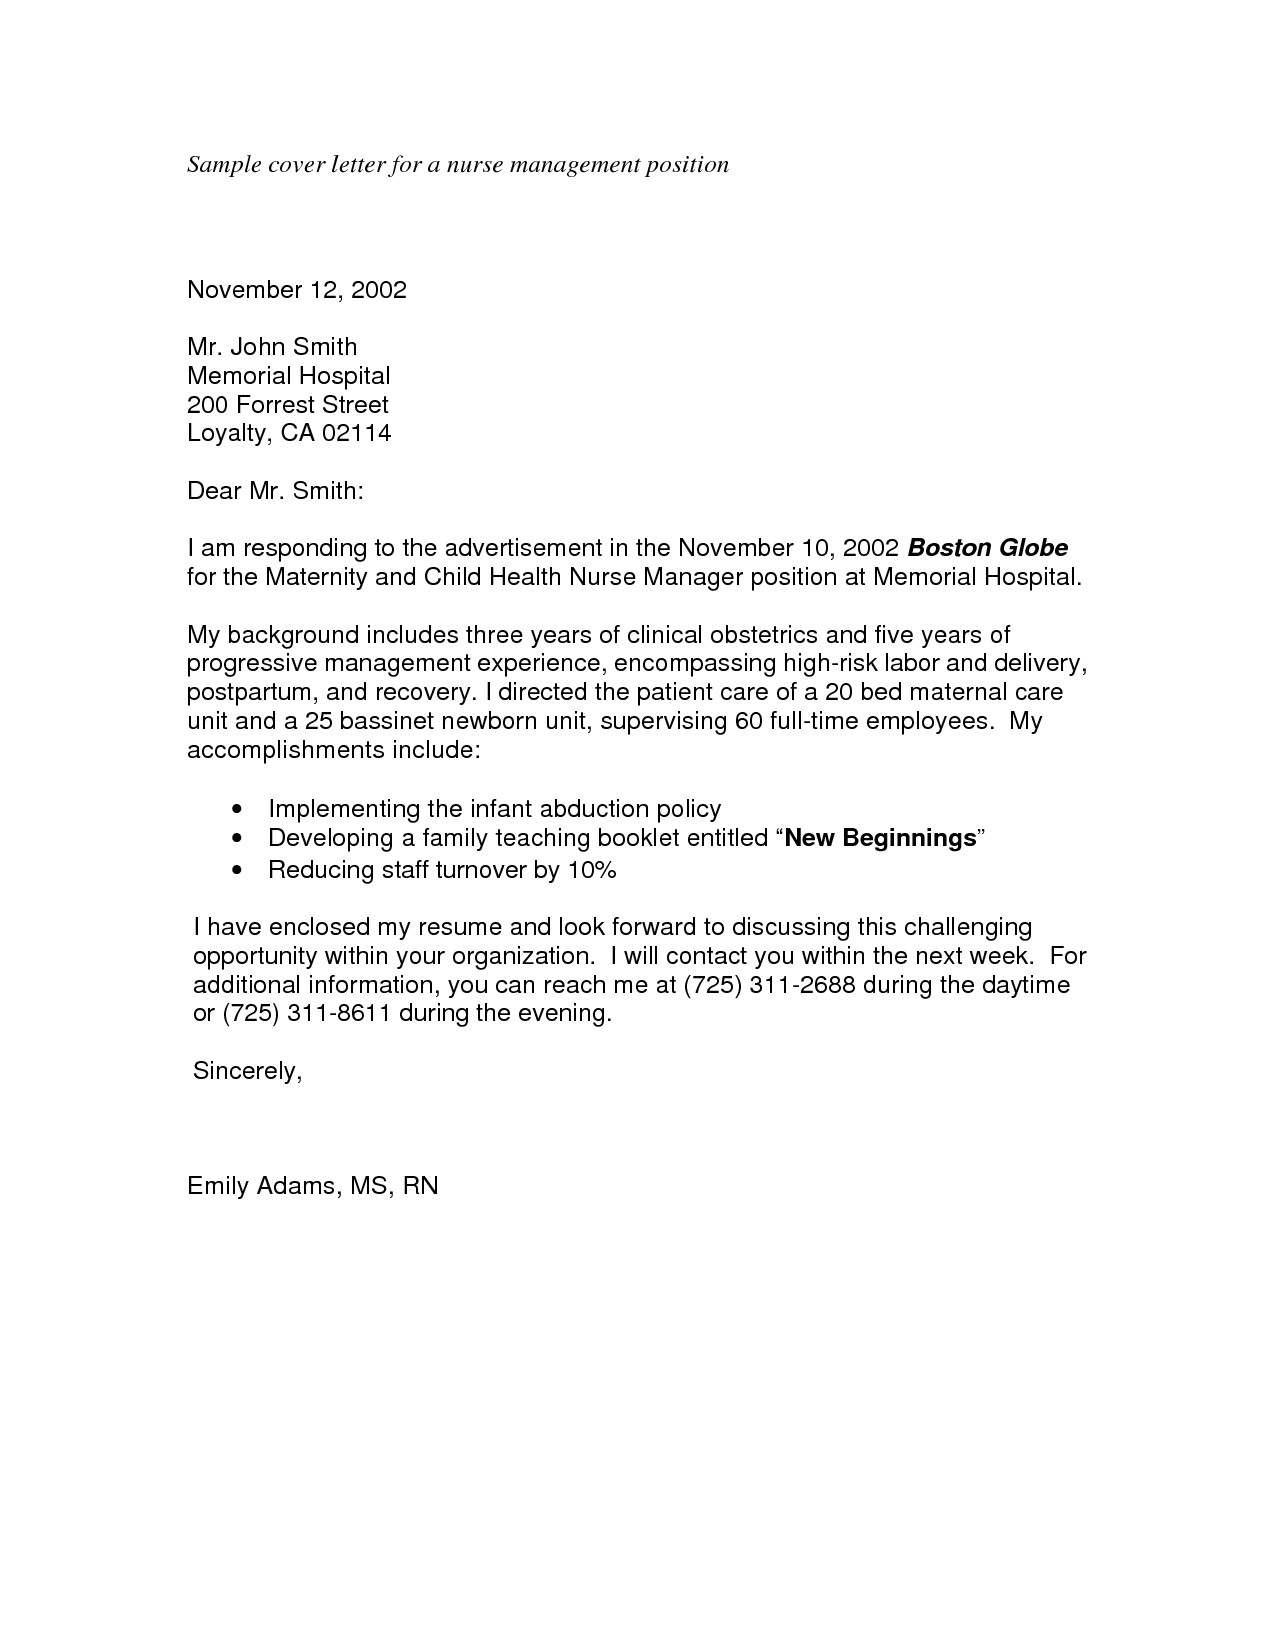 sample cover letter for applying a job 3361